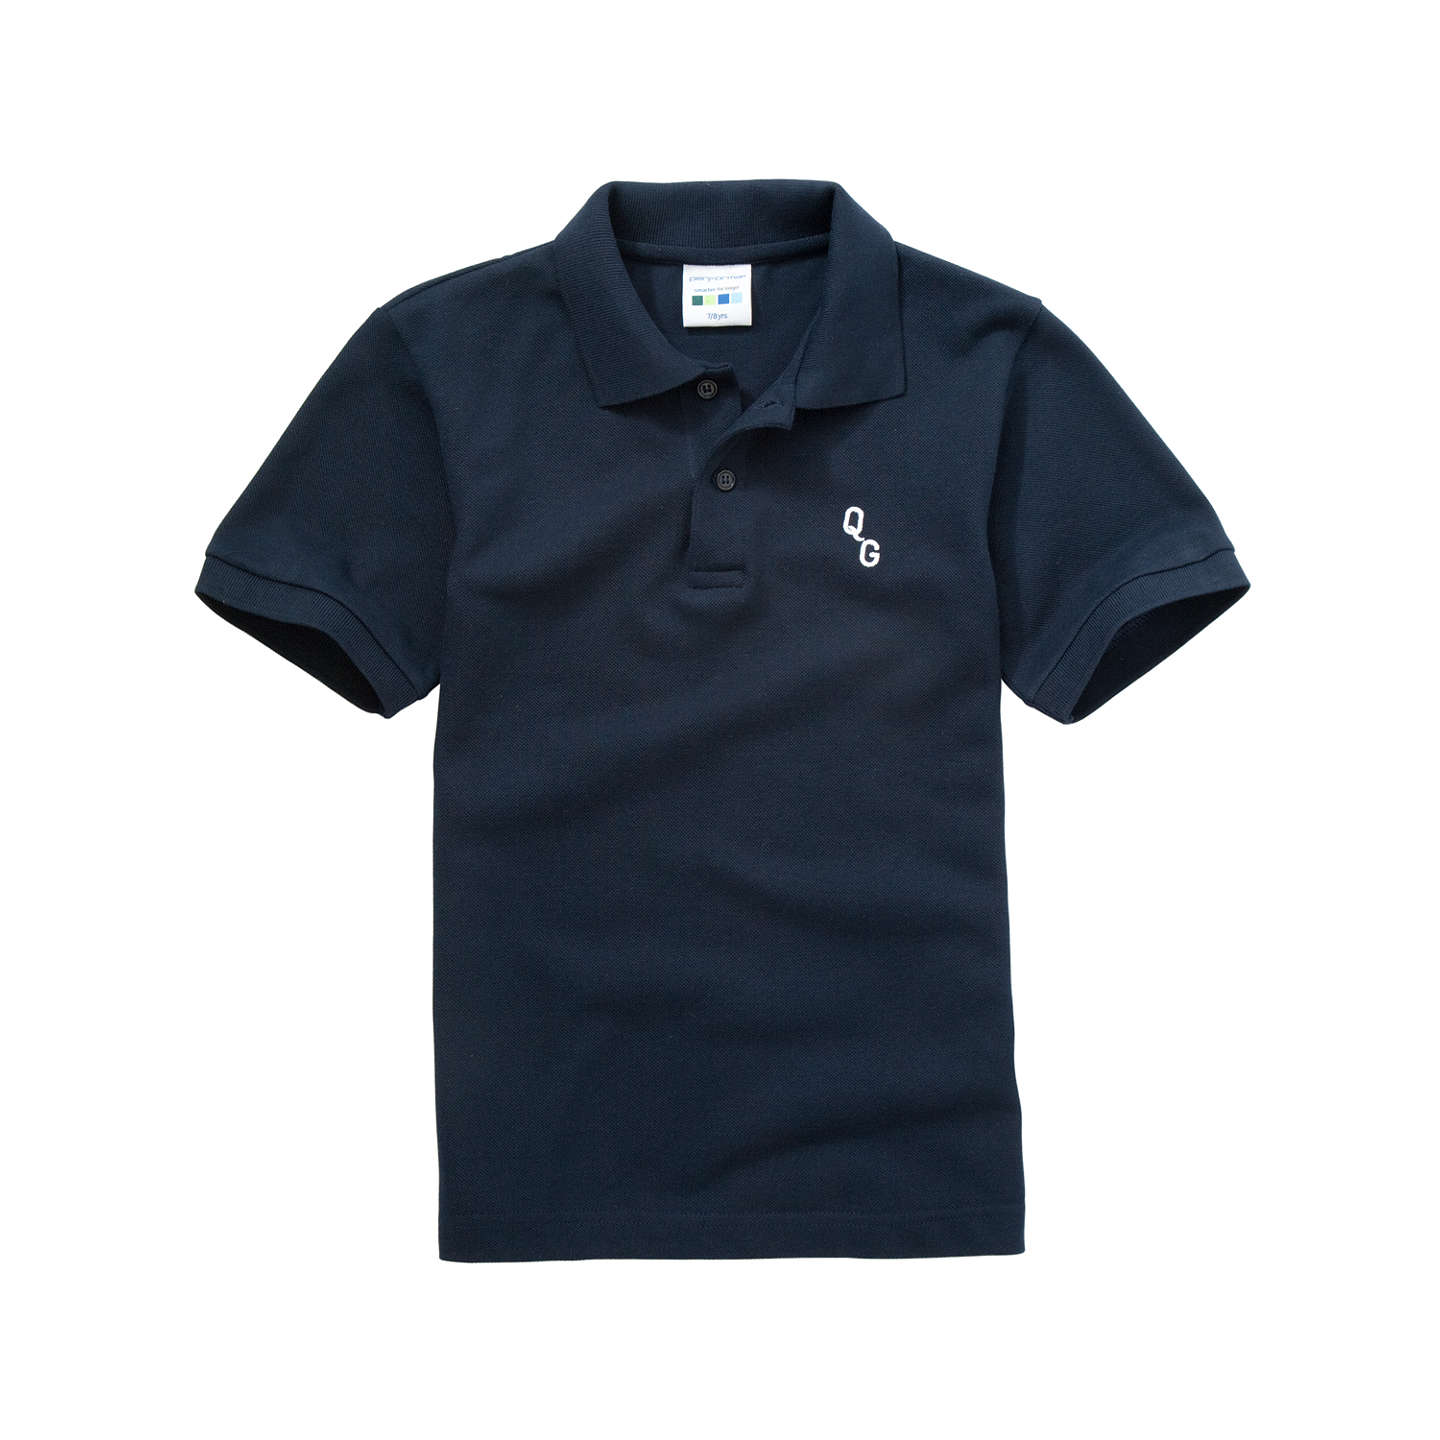 Navy Blue School Polo Tops Rldm